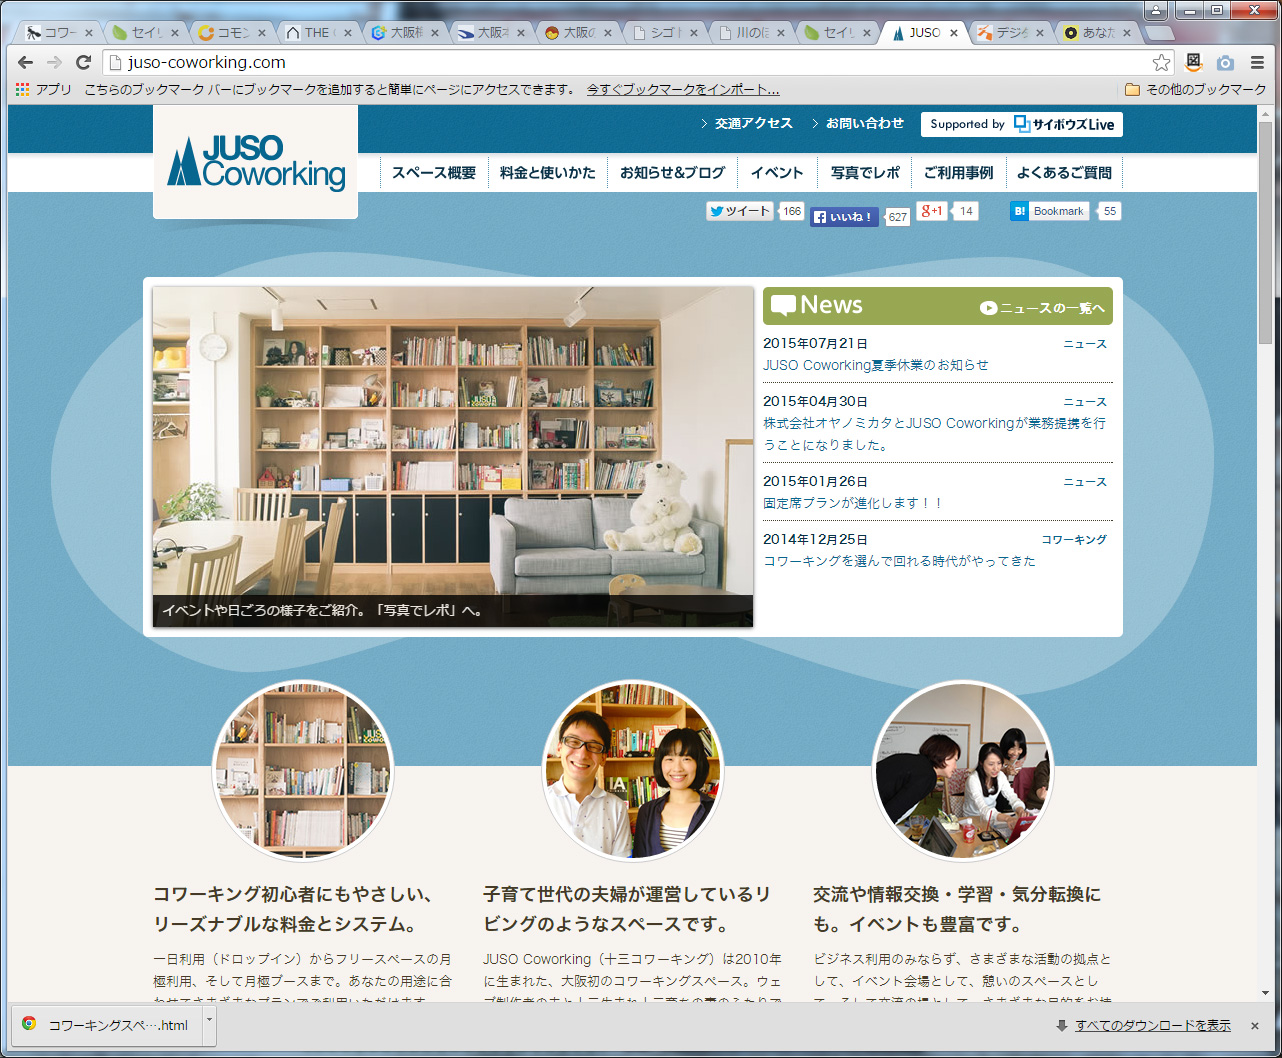 Juso-Coworking